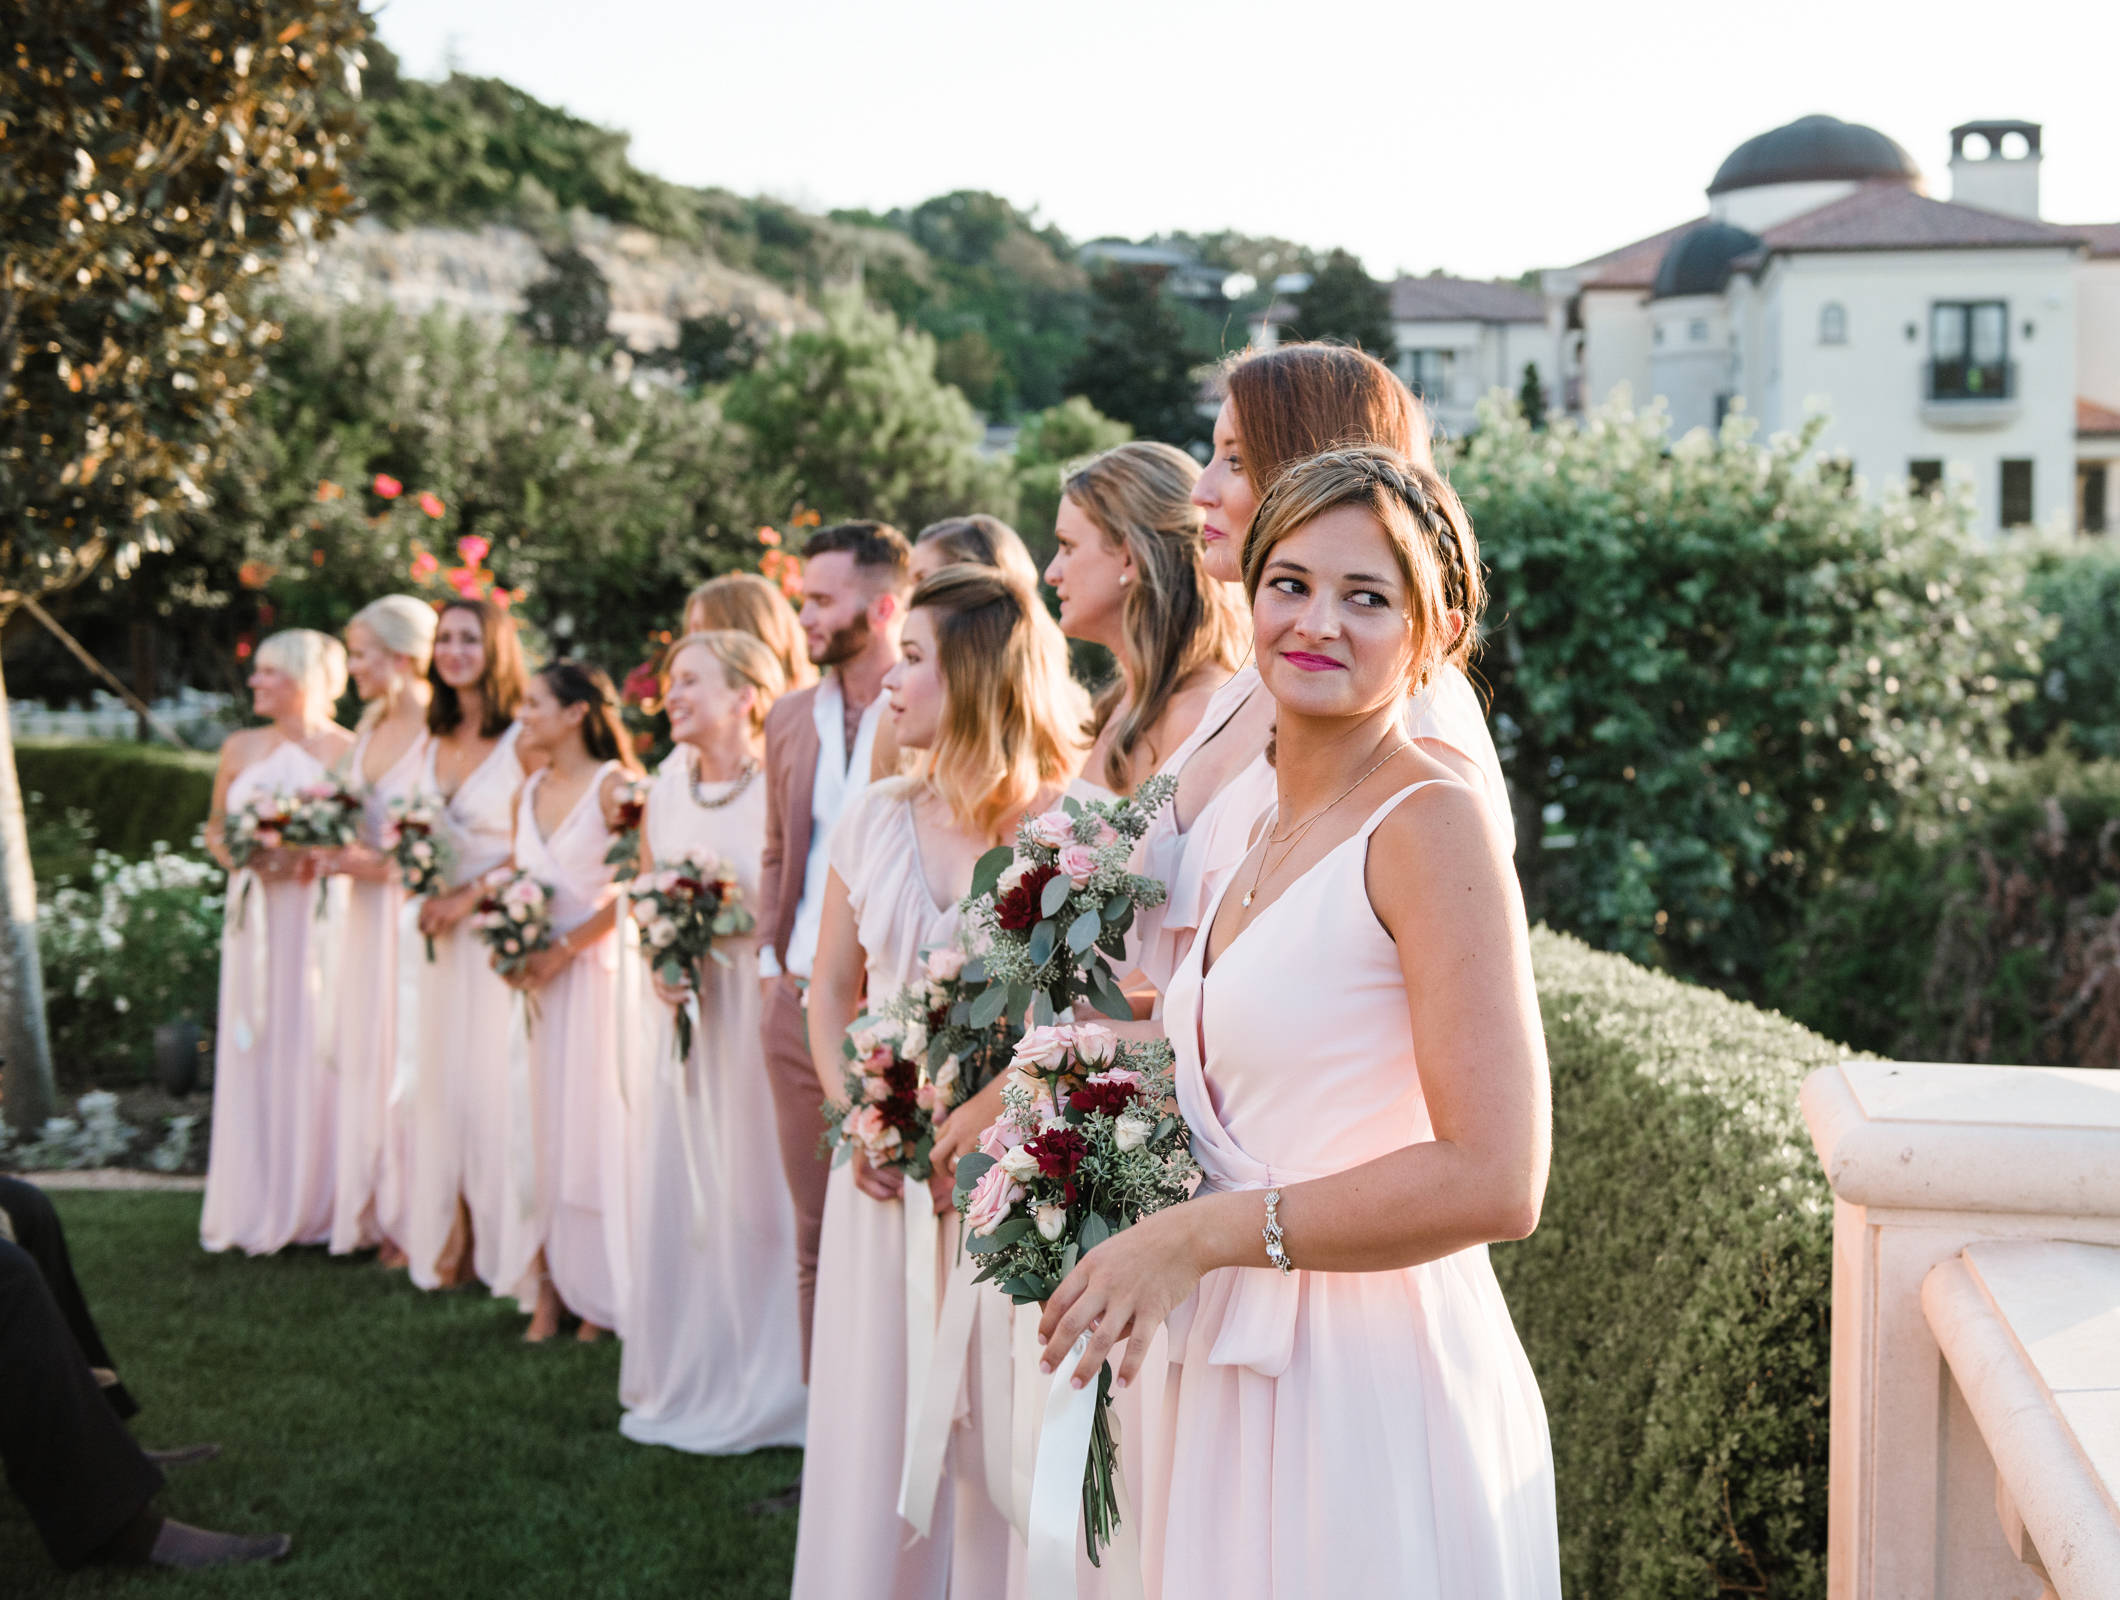 livvyland-blog-olivia-watson-wedding-villa-del-lago-austin-texas-fall-blush-burgundy-classic-romantic-maid-of-honor-altar